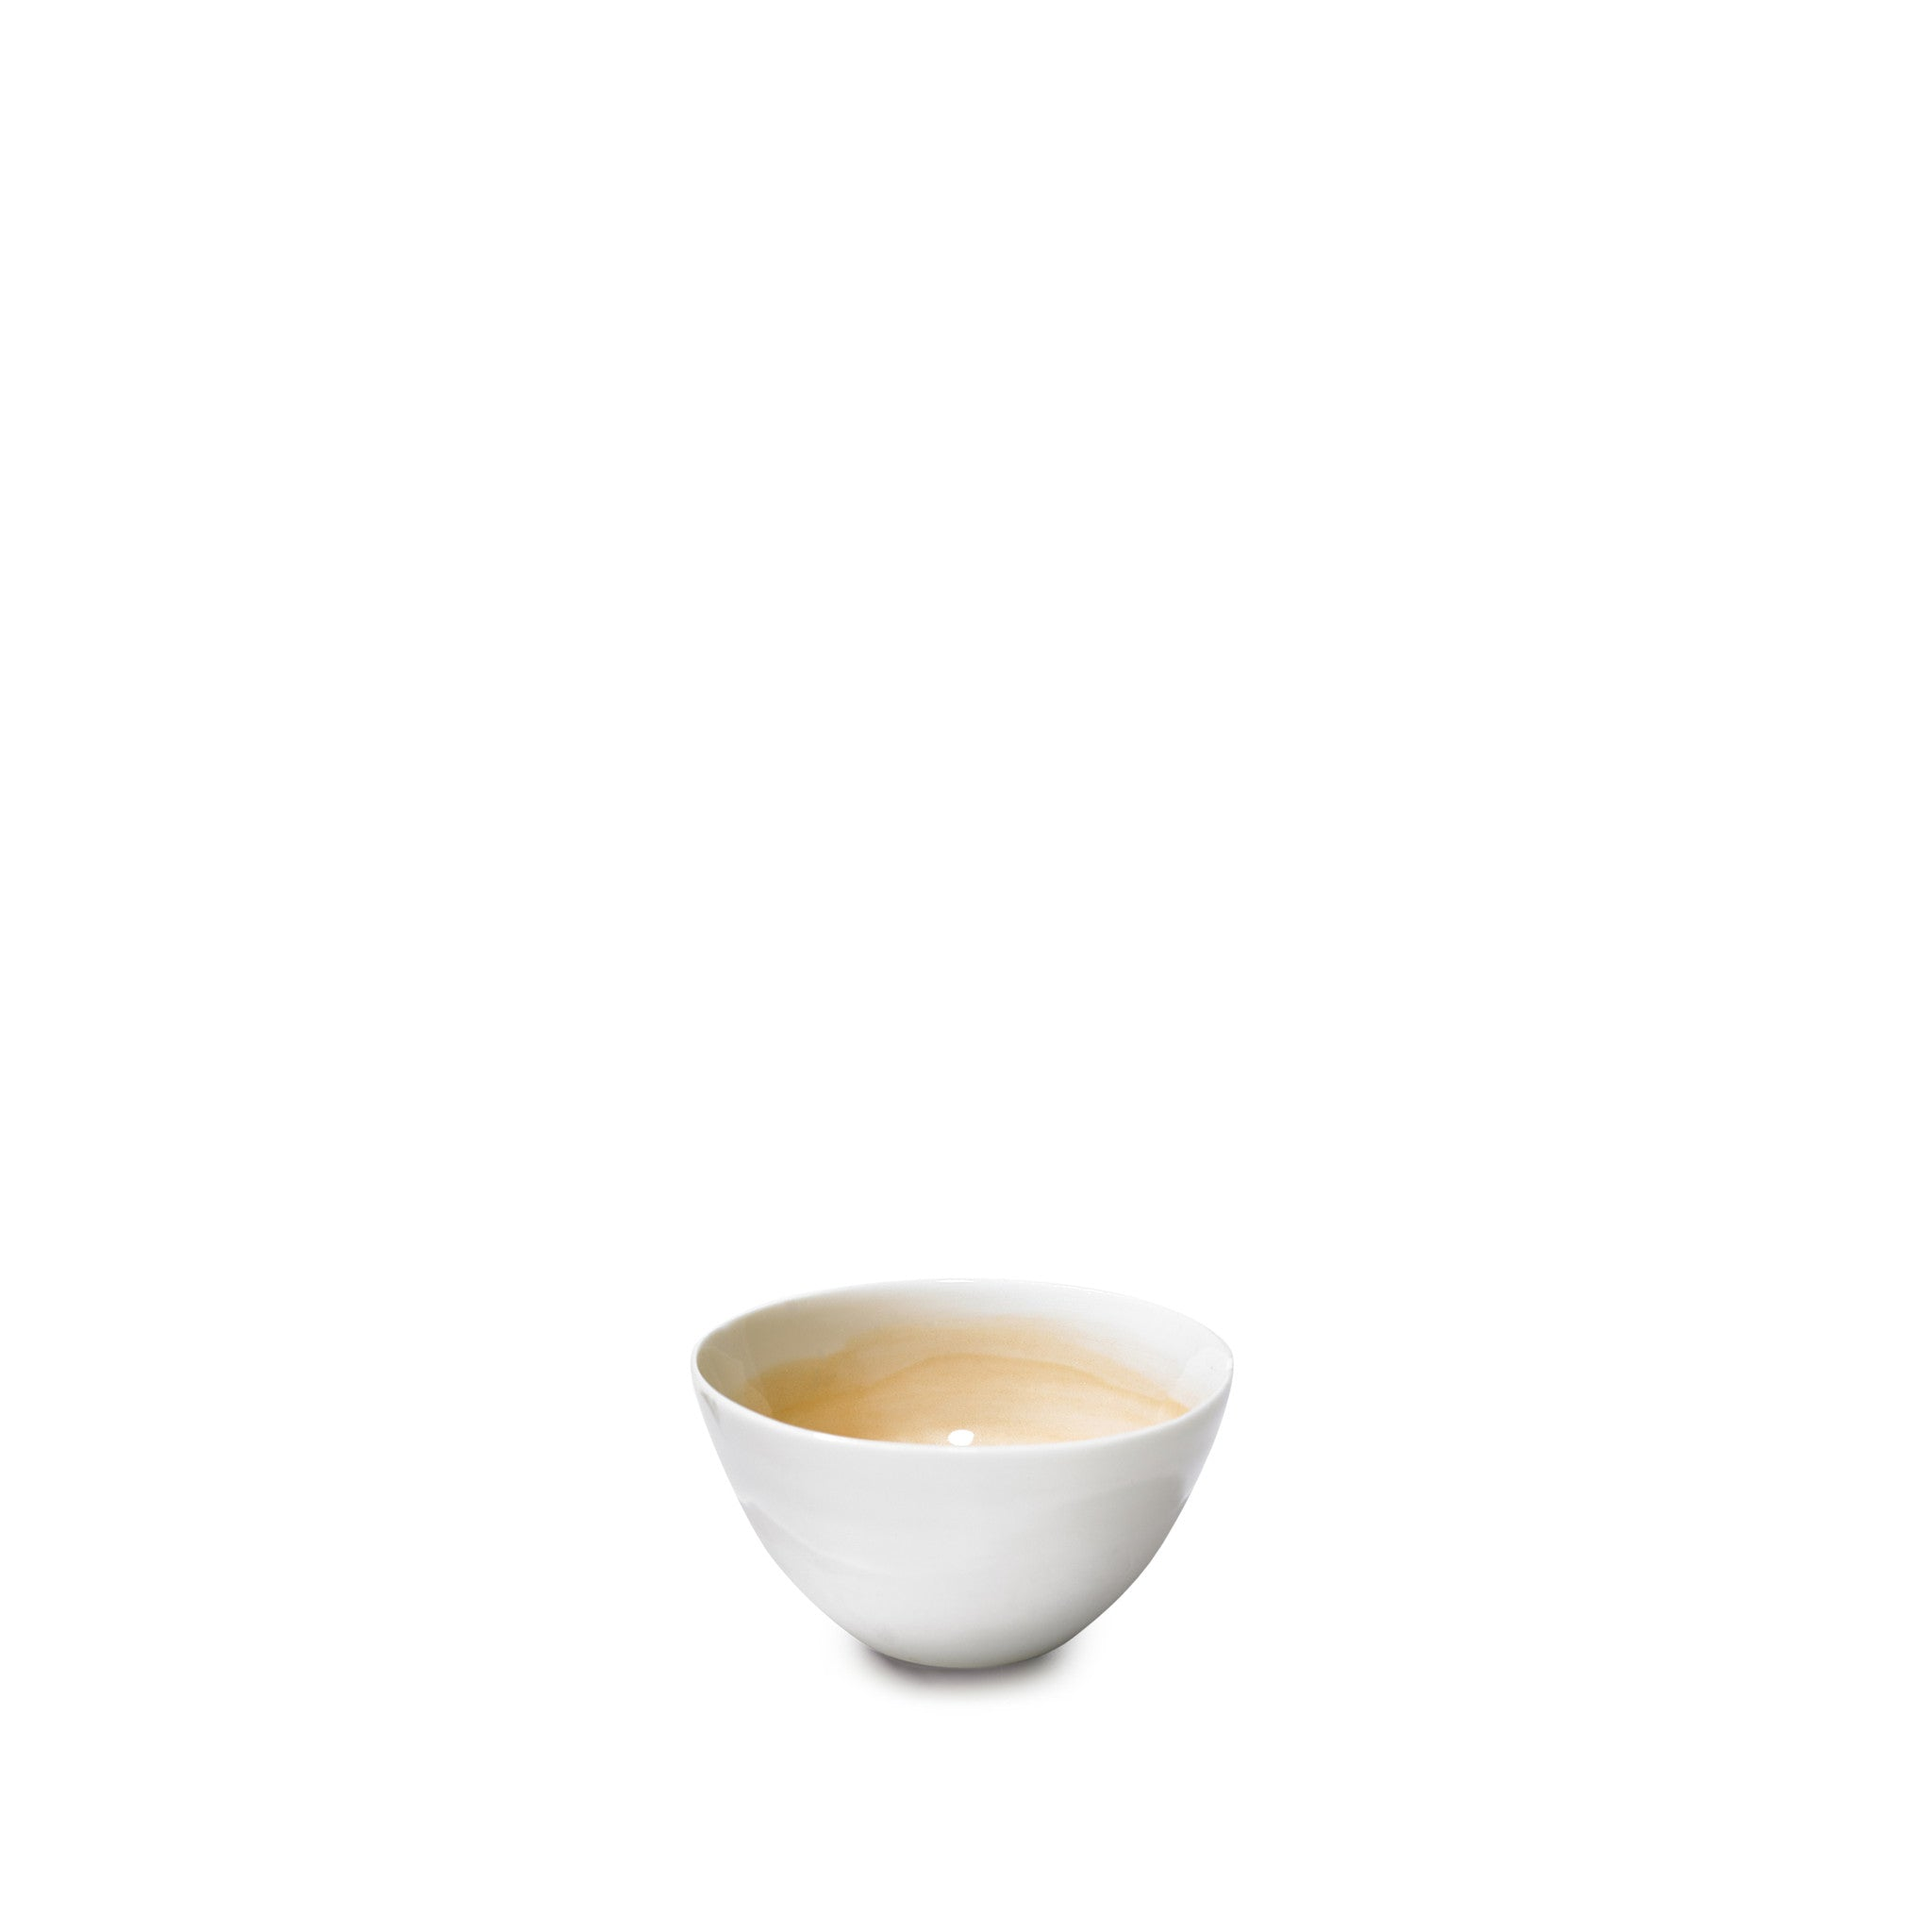 Small Pale Orange Porcelain Bowl with White Edge, 8cm